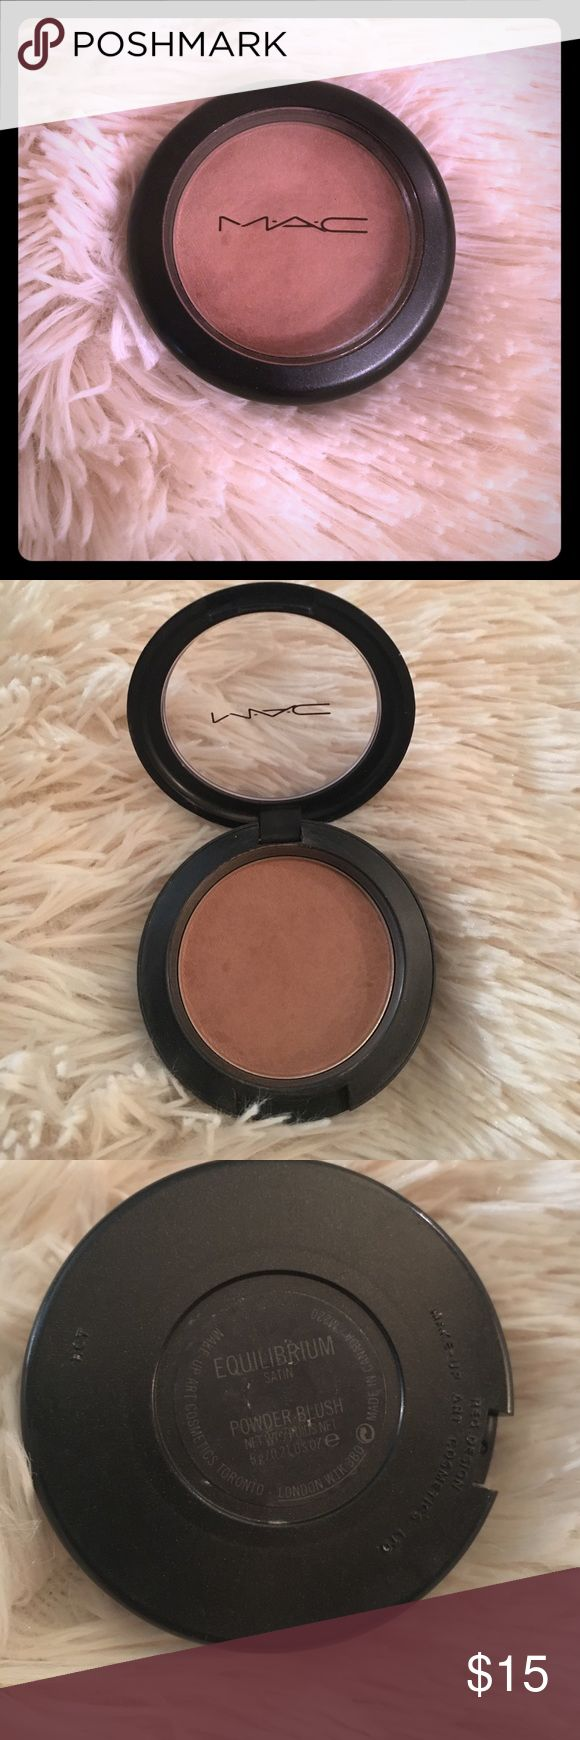 Mac Bronzer Equilibrium Satin Used a few times but too dark for me.Is almost full, lots of uses left. Color is called equilibrium satin. MAC Cosmetics Makeup Bronzer